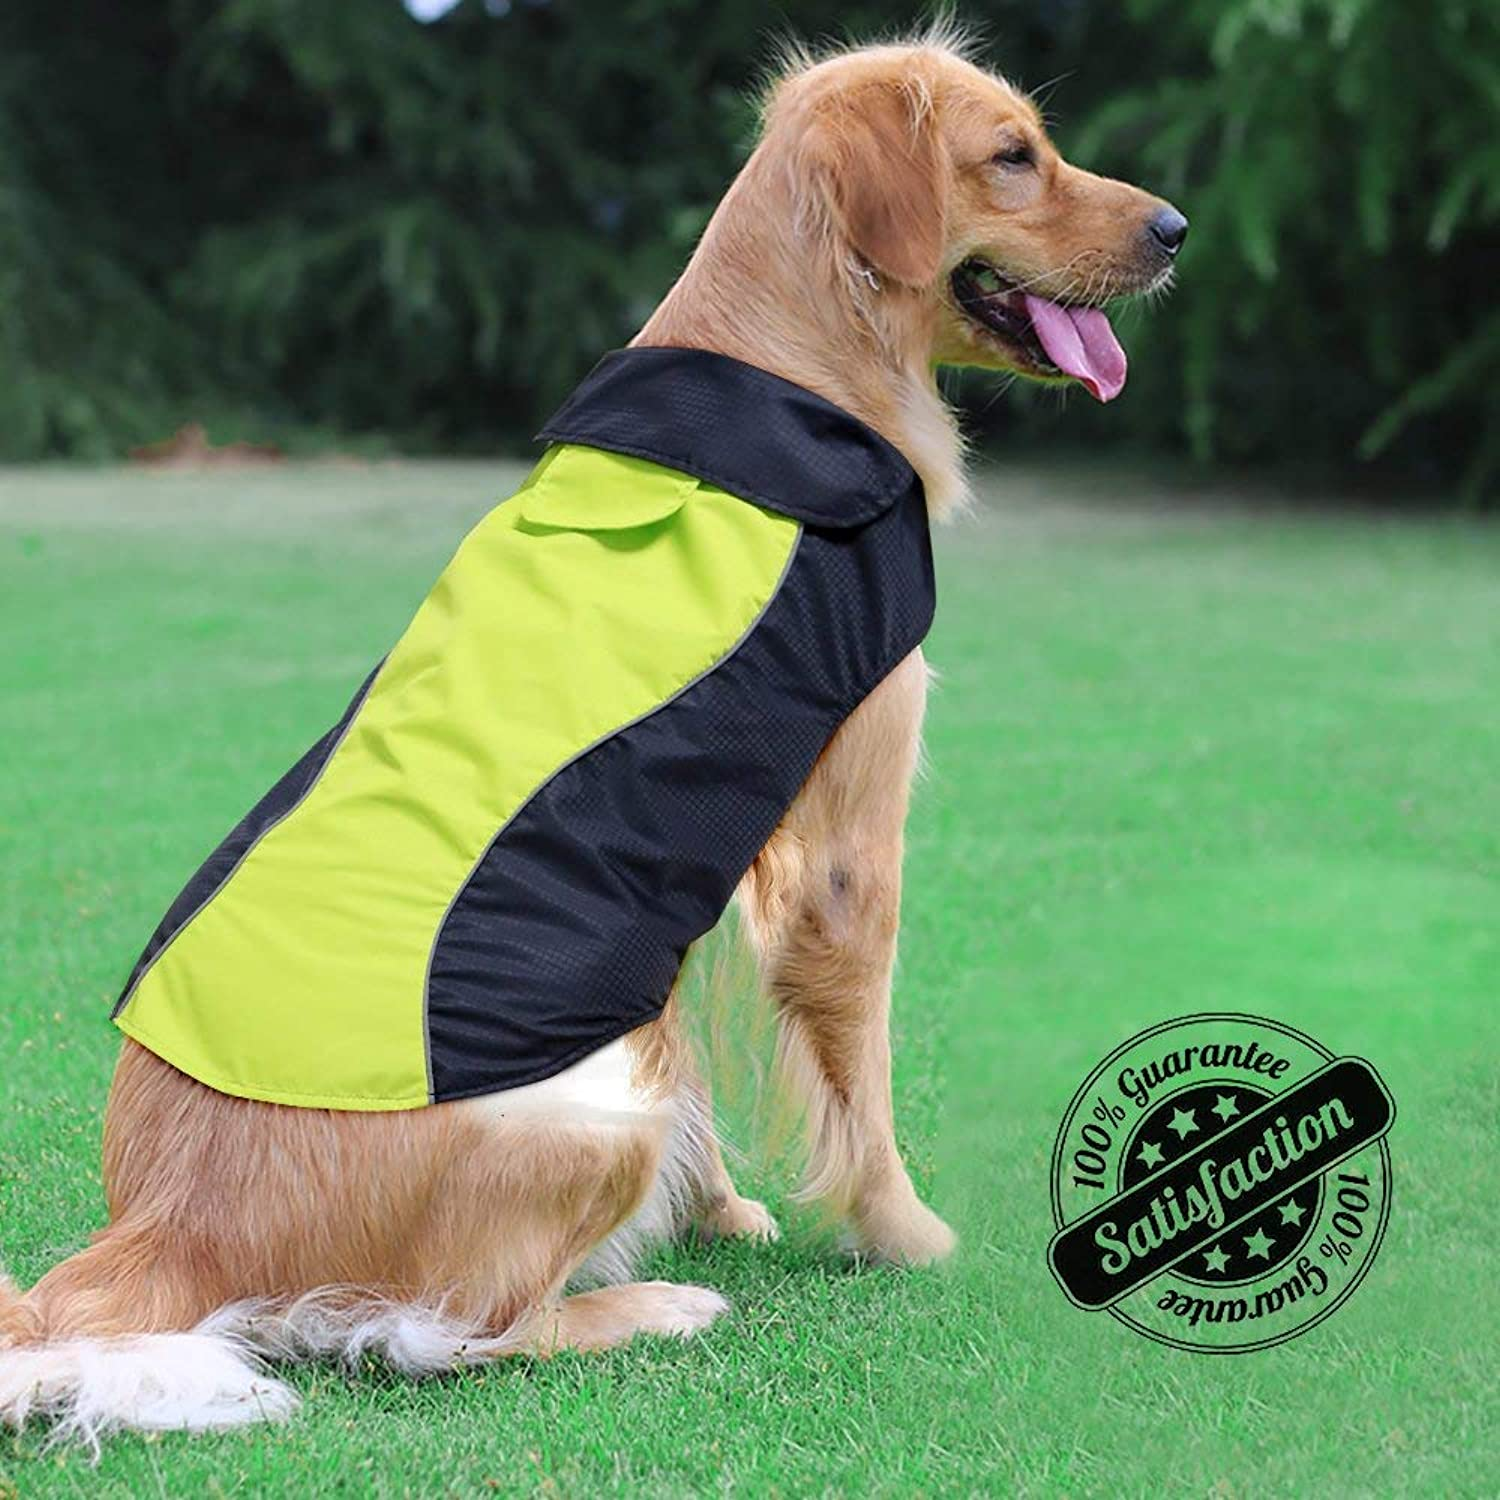 Ezer High Visibility Dog Coat Safety Waterproof Dog Jacket for Cold Weather (XXXL)